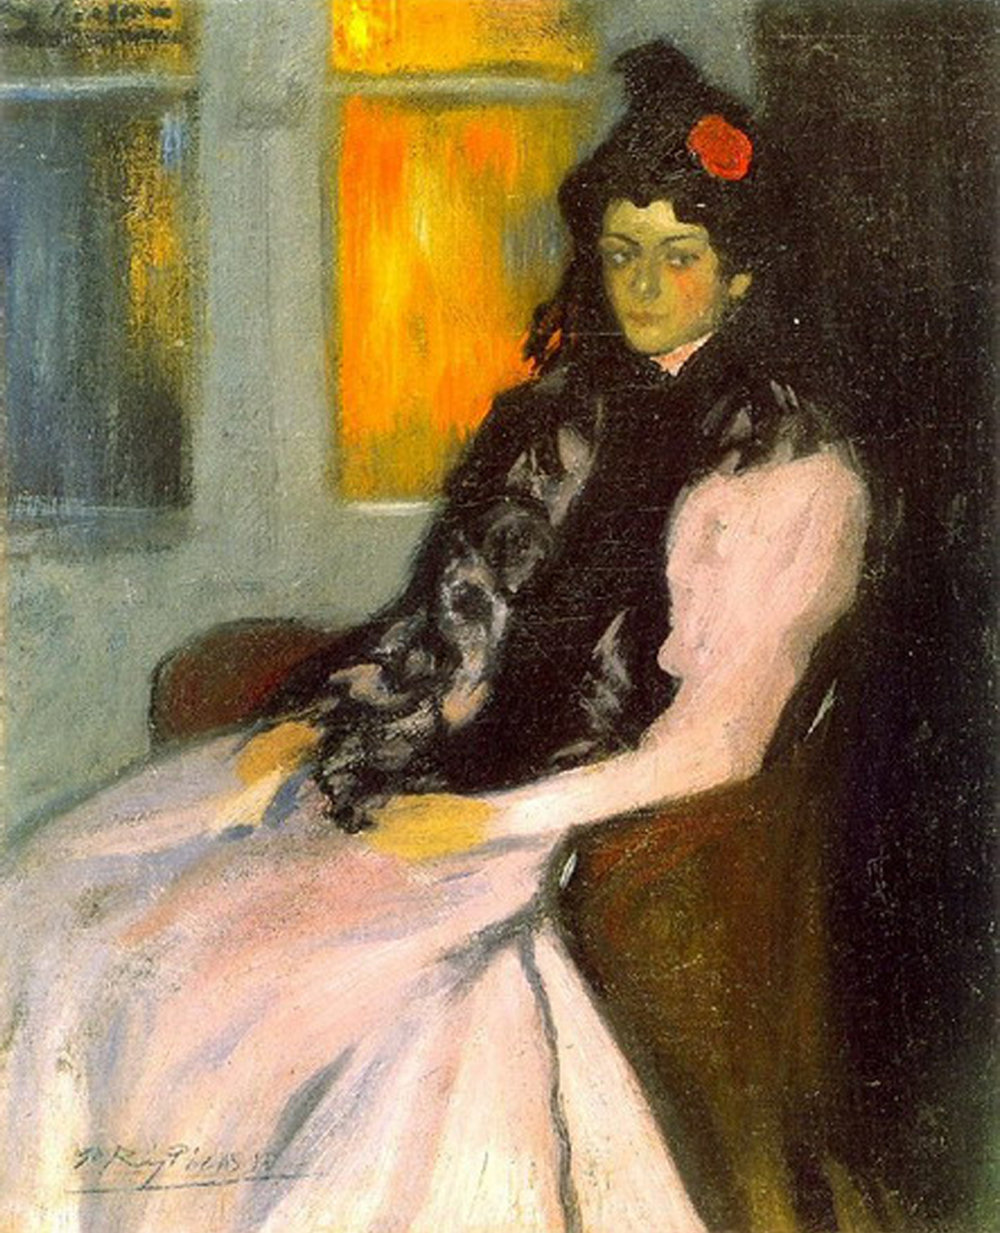 1899    Lola Picasso, artist sister